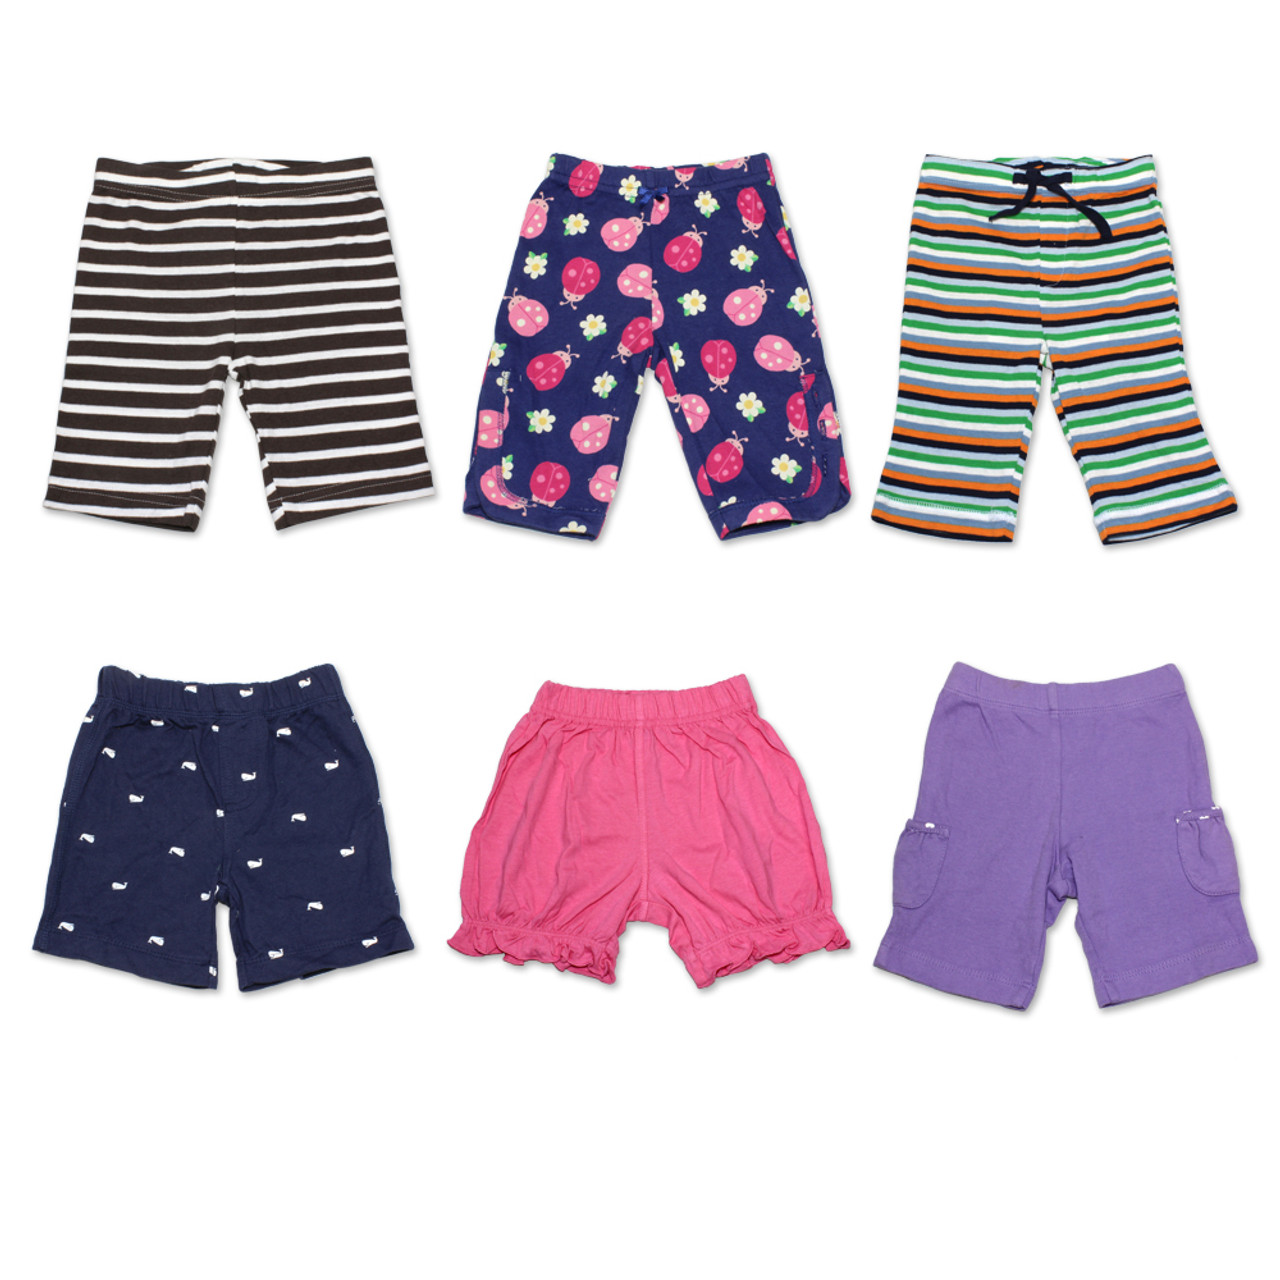 3ac1d8e077c (72) Children Clothing Mixed Styles Sizes Boy Girl Baby Pants Trousers